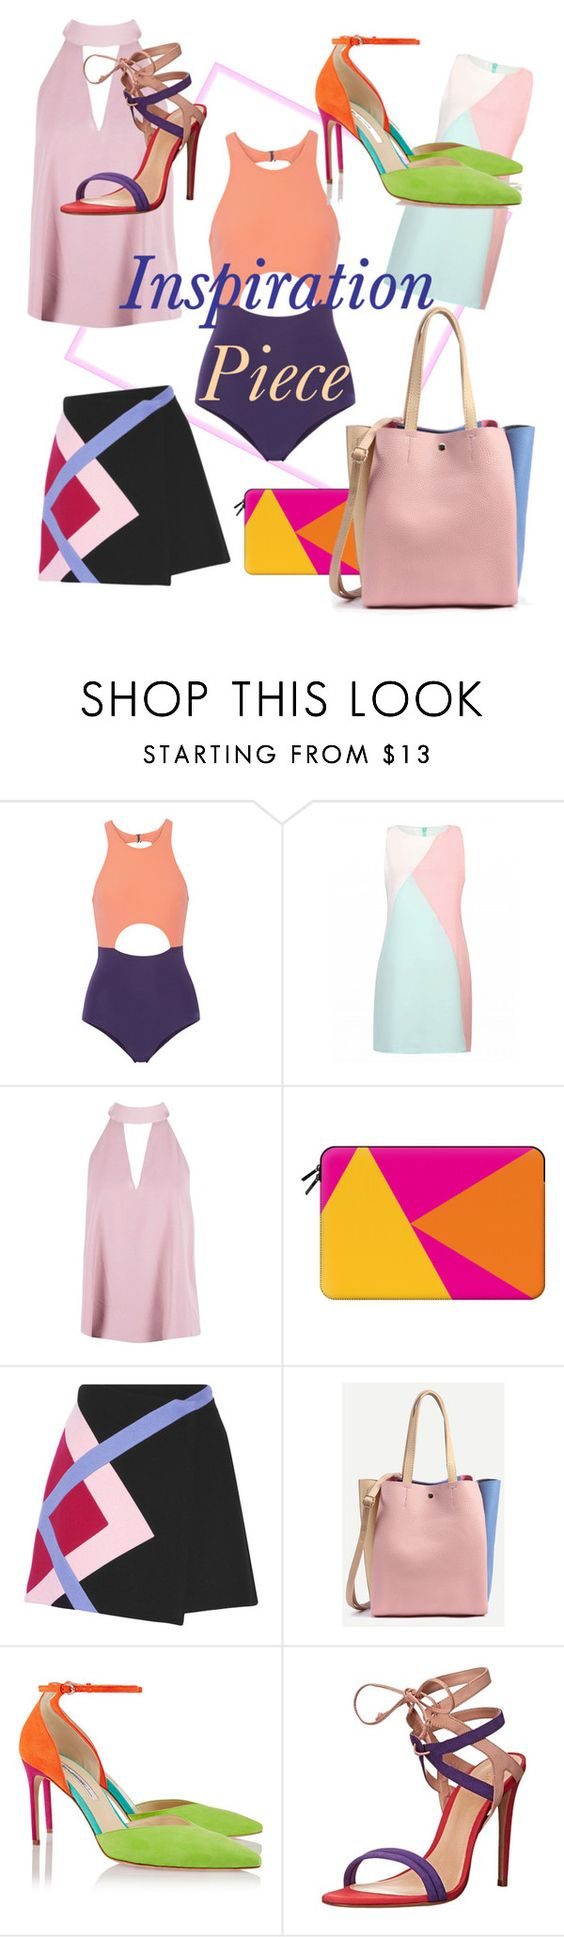 """""""Inspiration piece block color"""" by craftyduoramz ❤ liked on Polyvore featuring Flagpole, Boohoo, Casetify, MSGM, Brian Atwood and Schutz"""